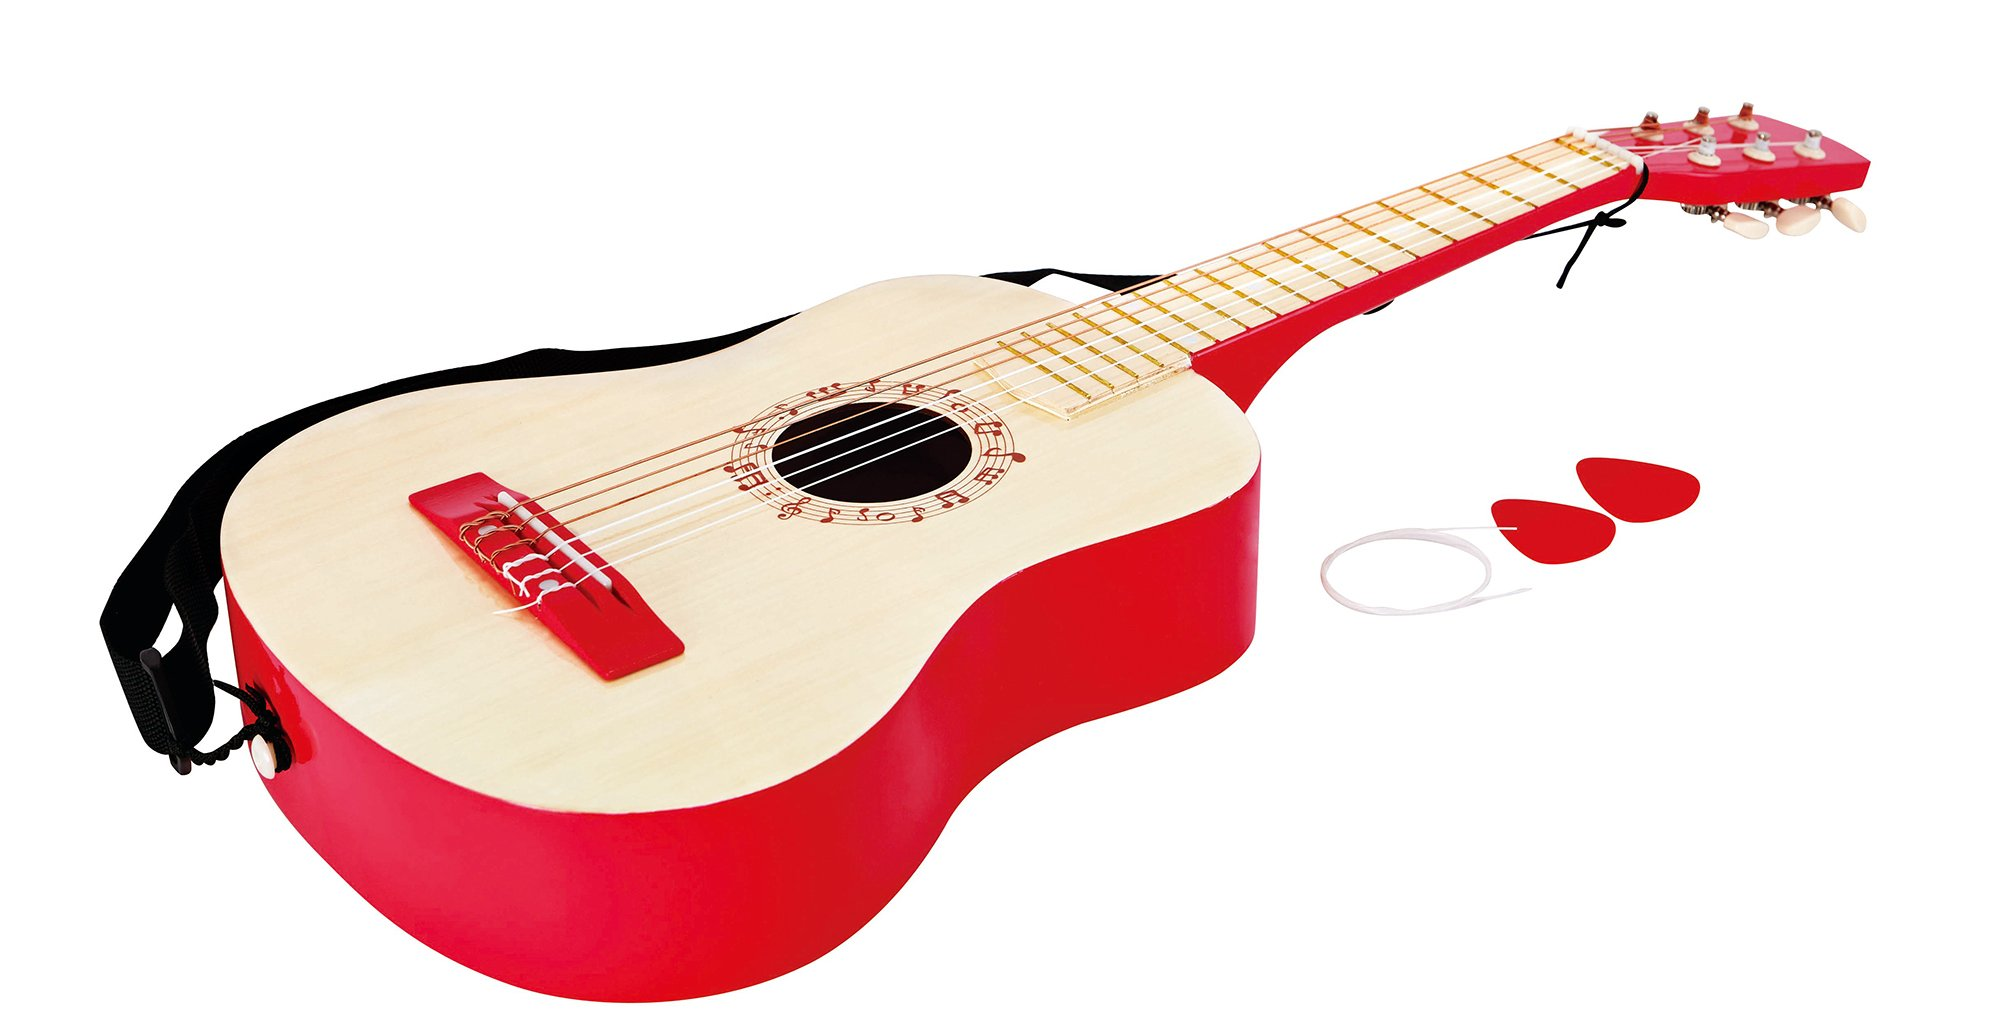 Hape Vibrant Guitar Kid's Toddler Wooden Musical Instrument in Red by Hape